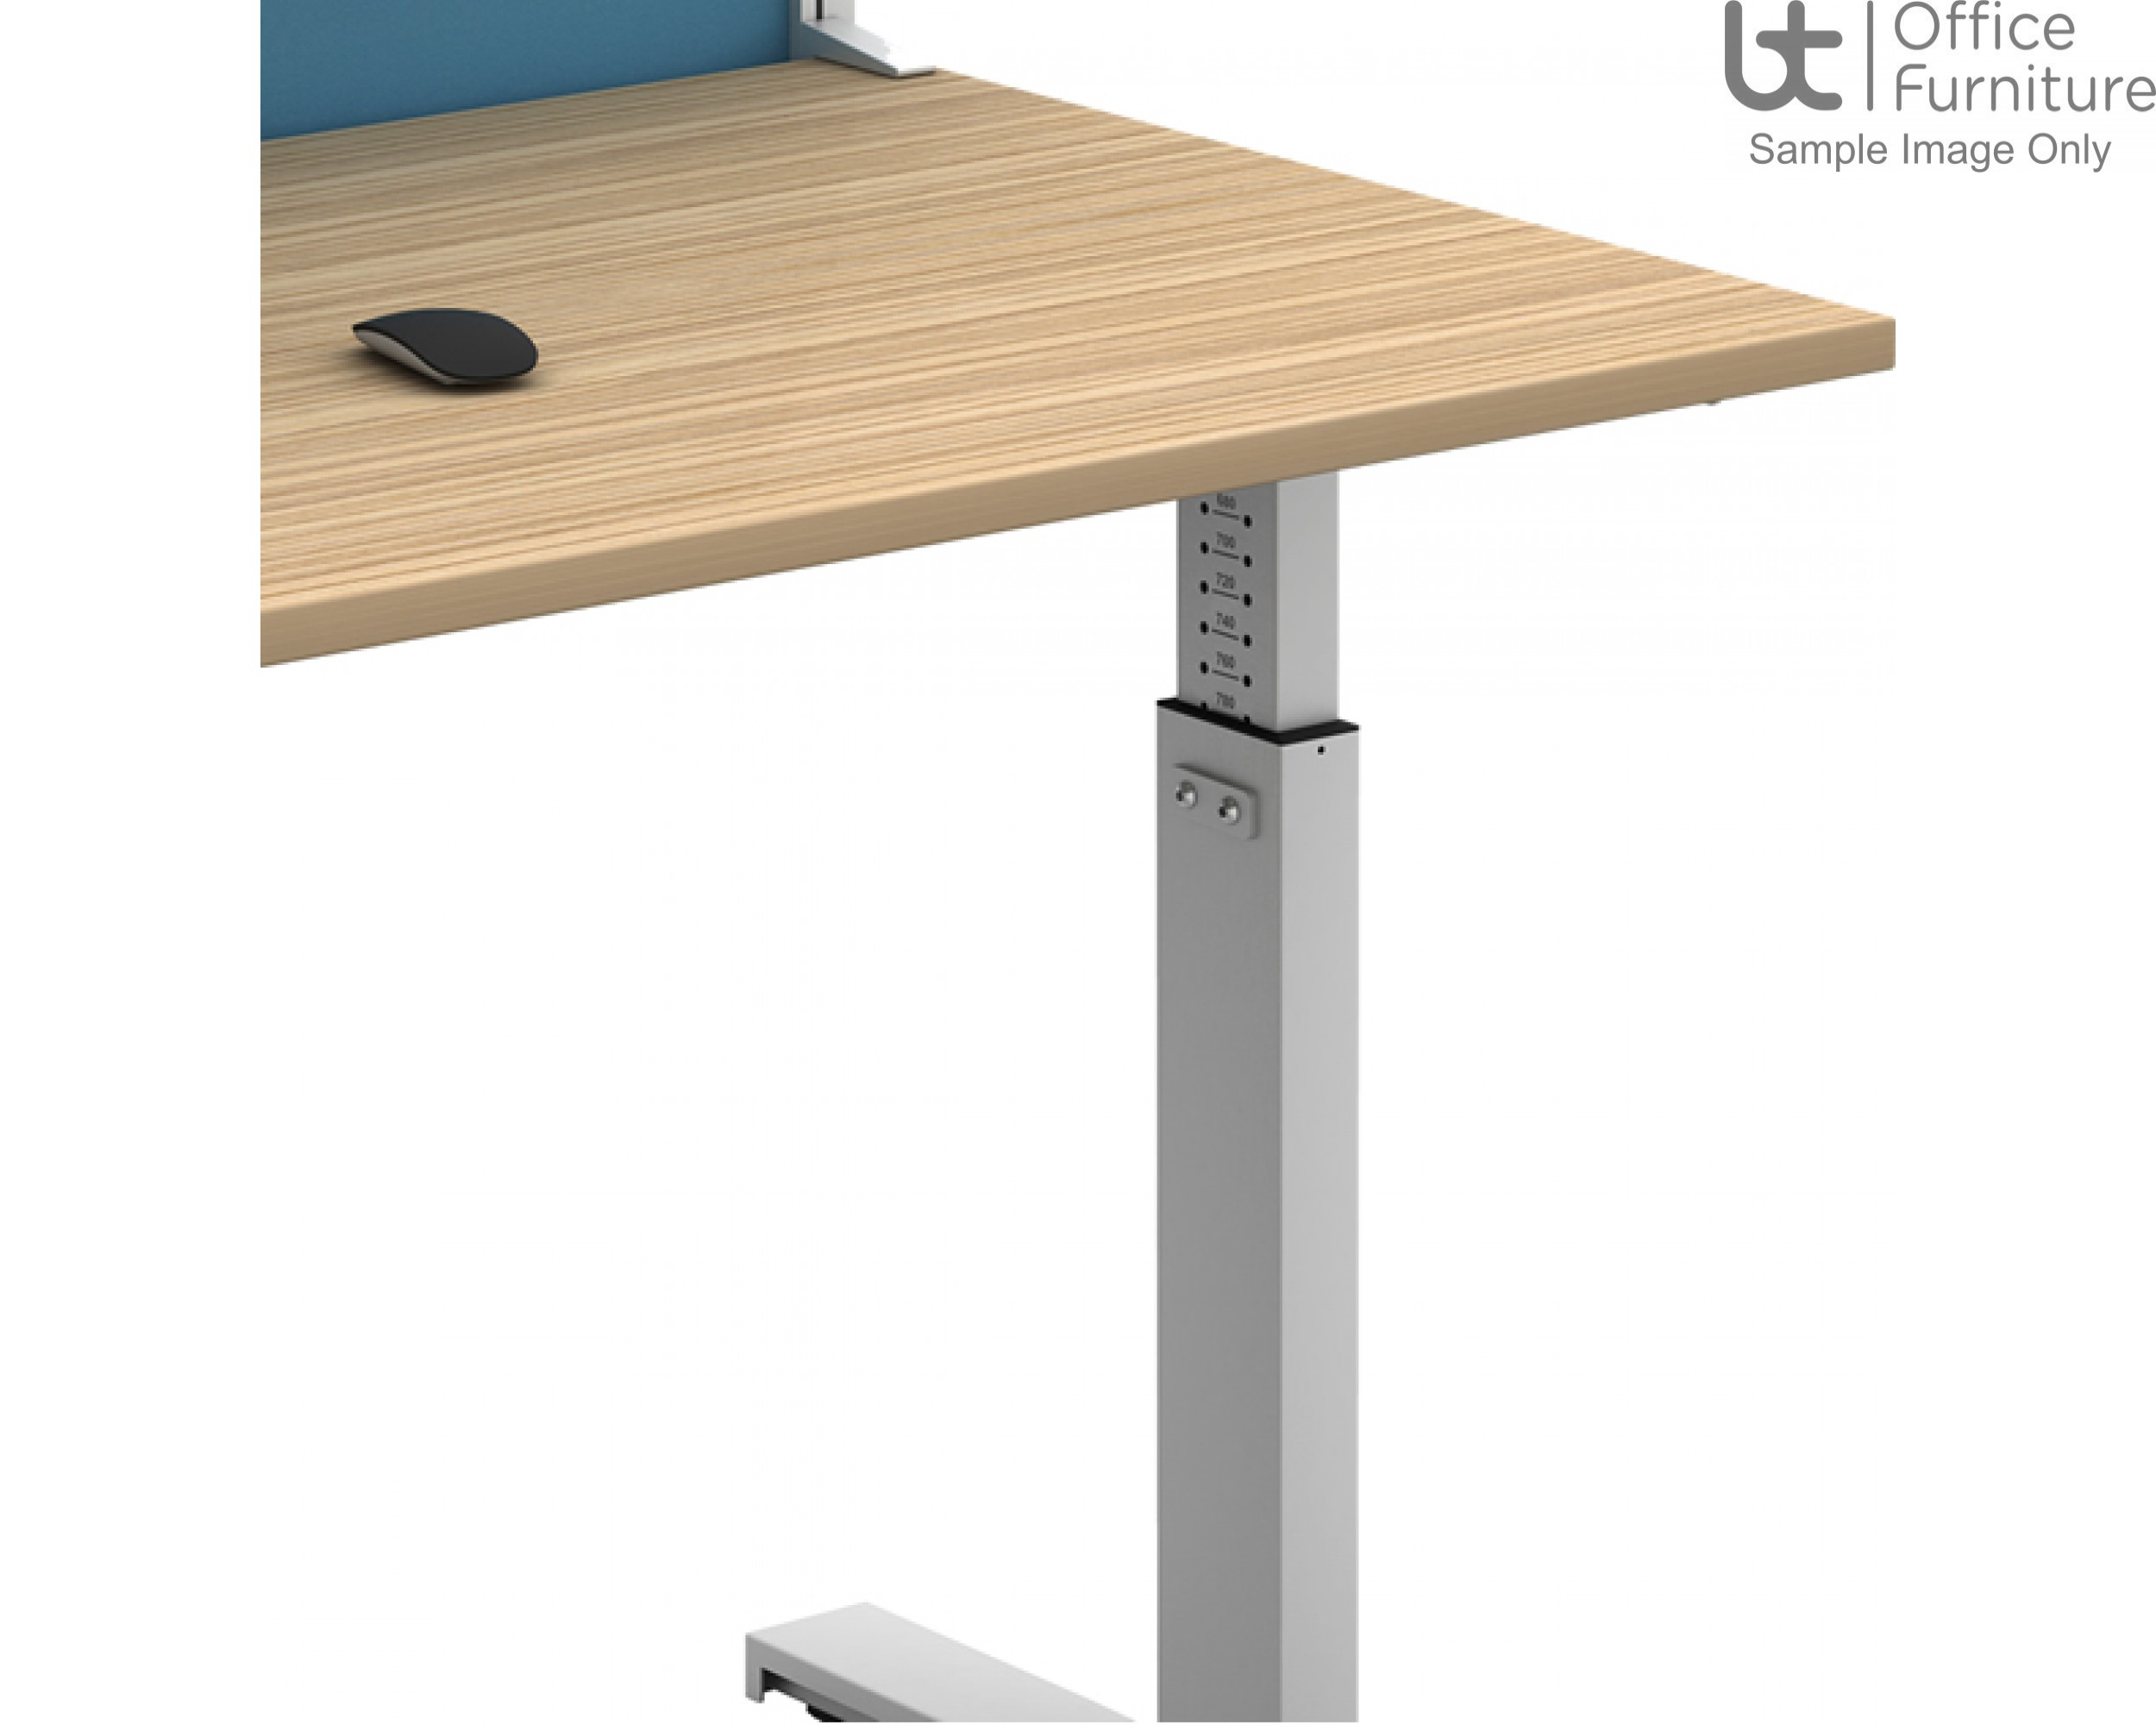 move! Set and Forget Rectangular Height Adjustable Sit-Stand Desk